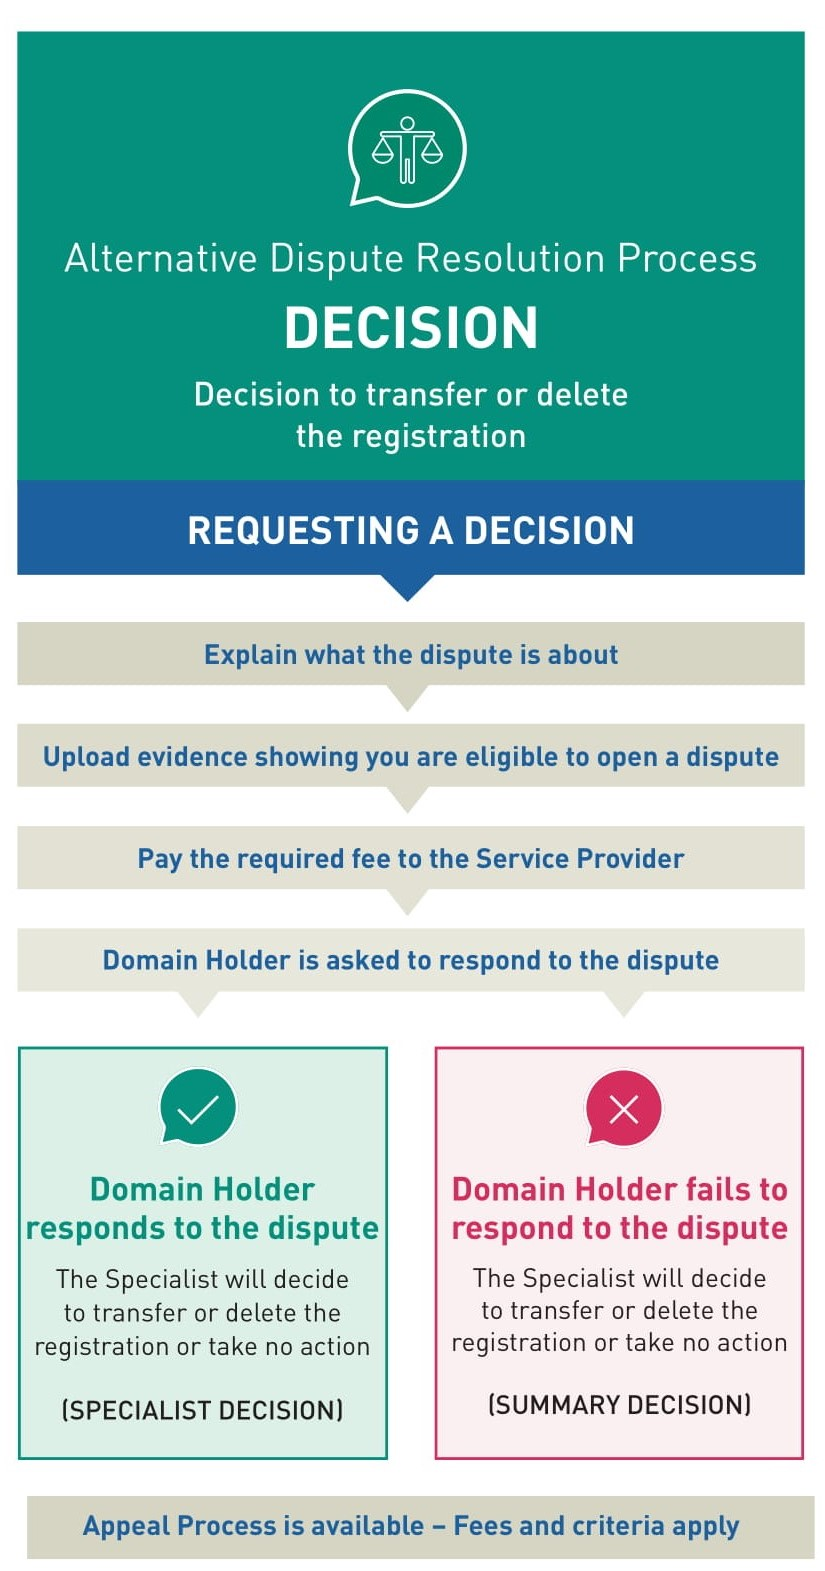 Alternative Dispute Resolution Process Graphic: Decision